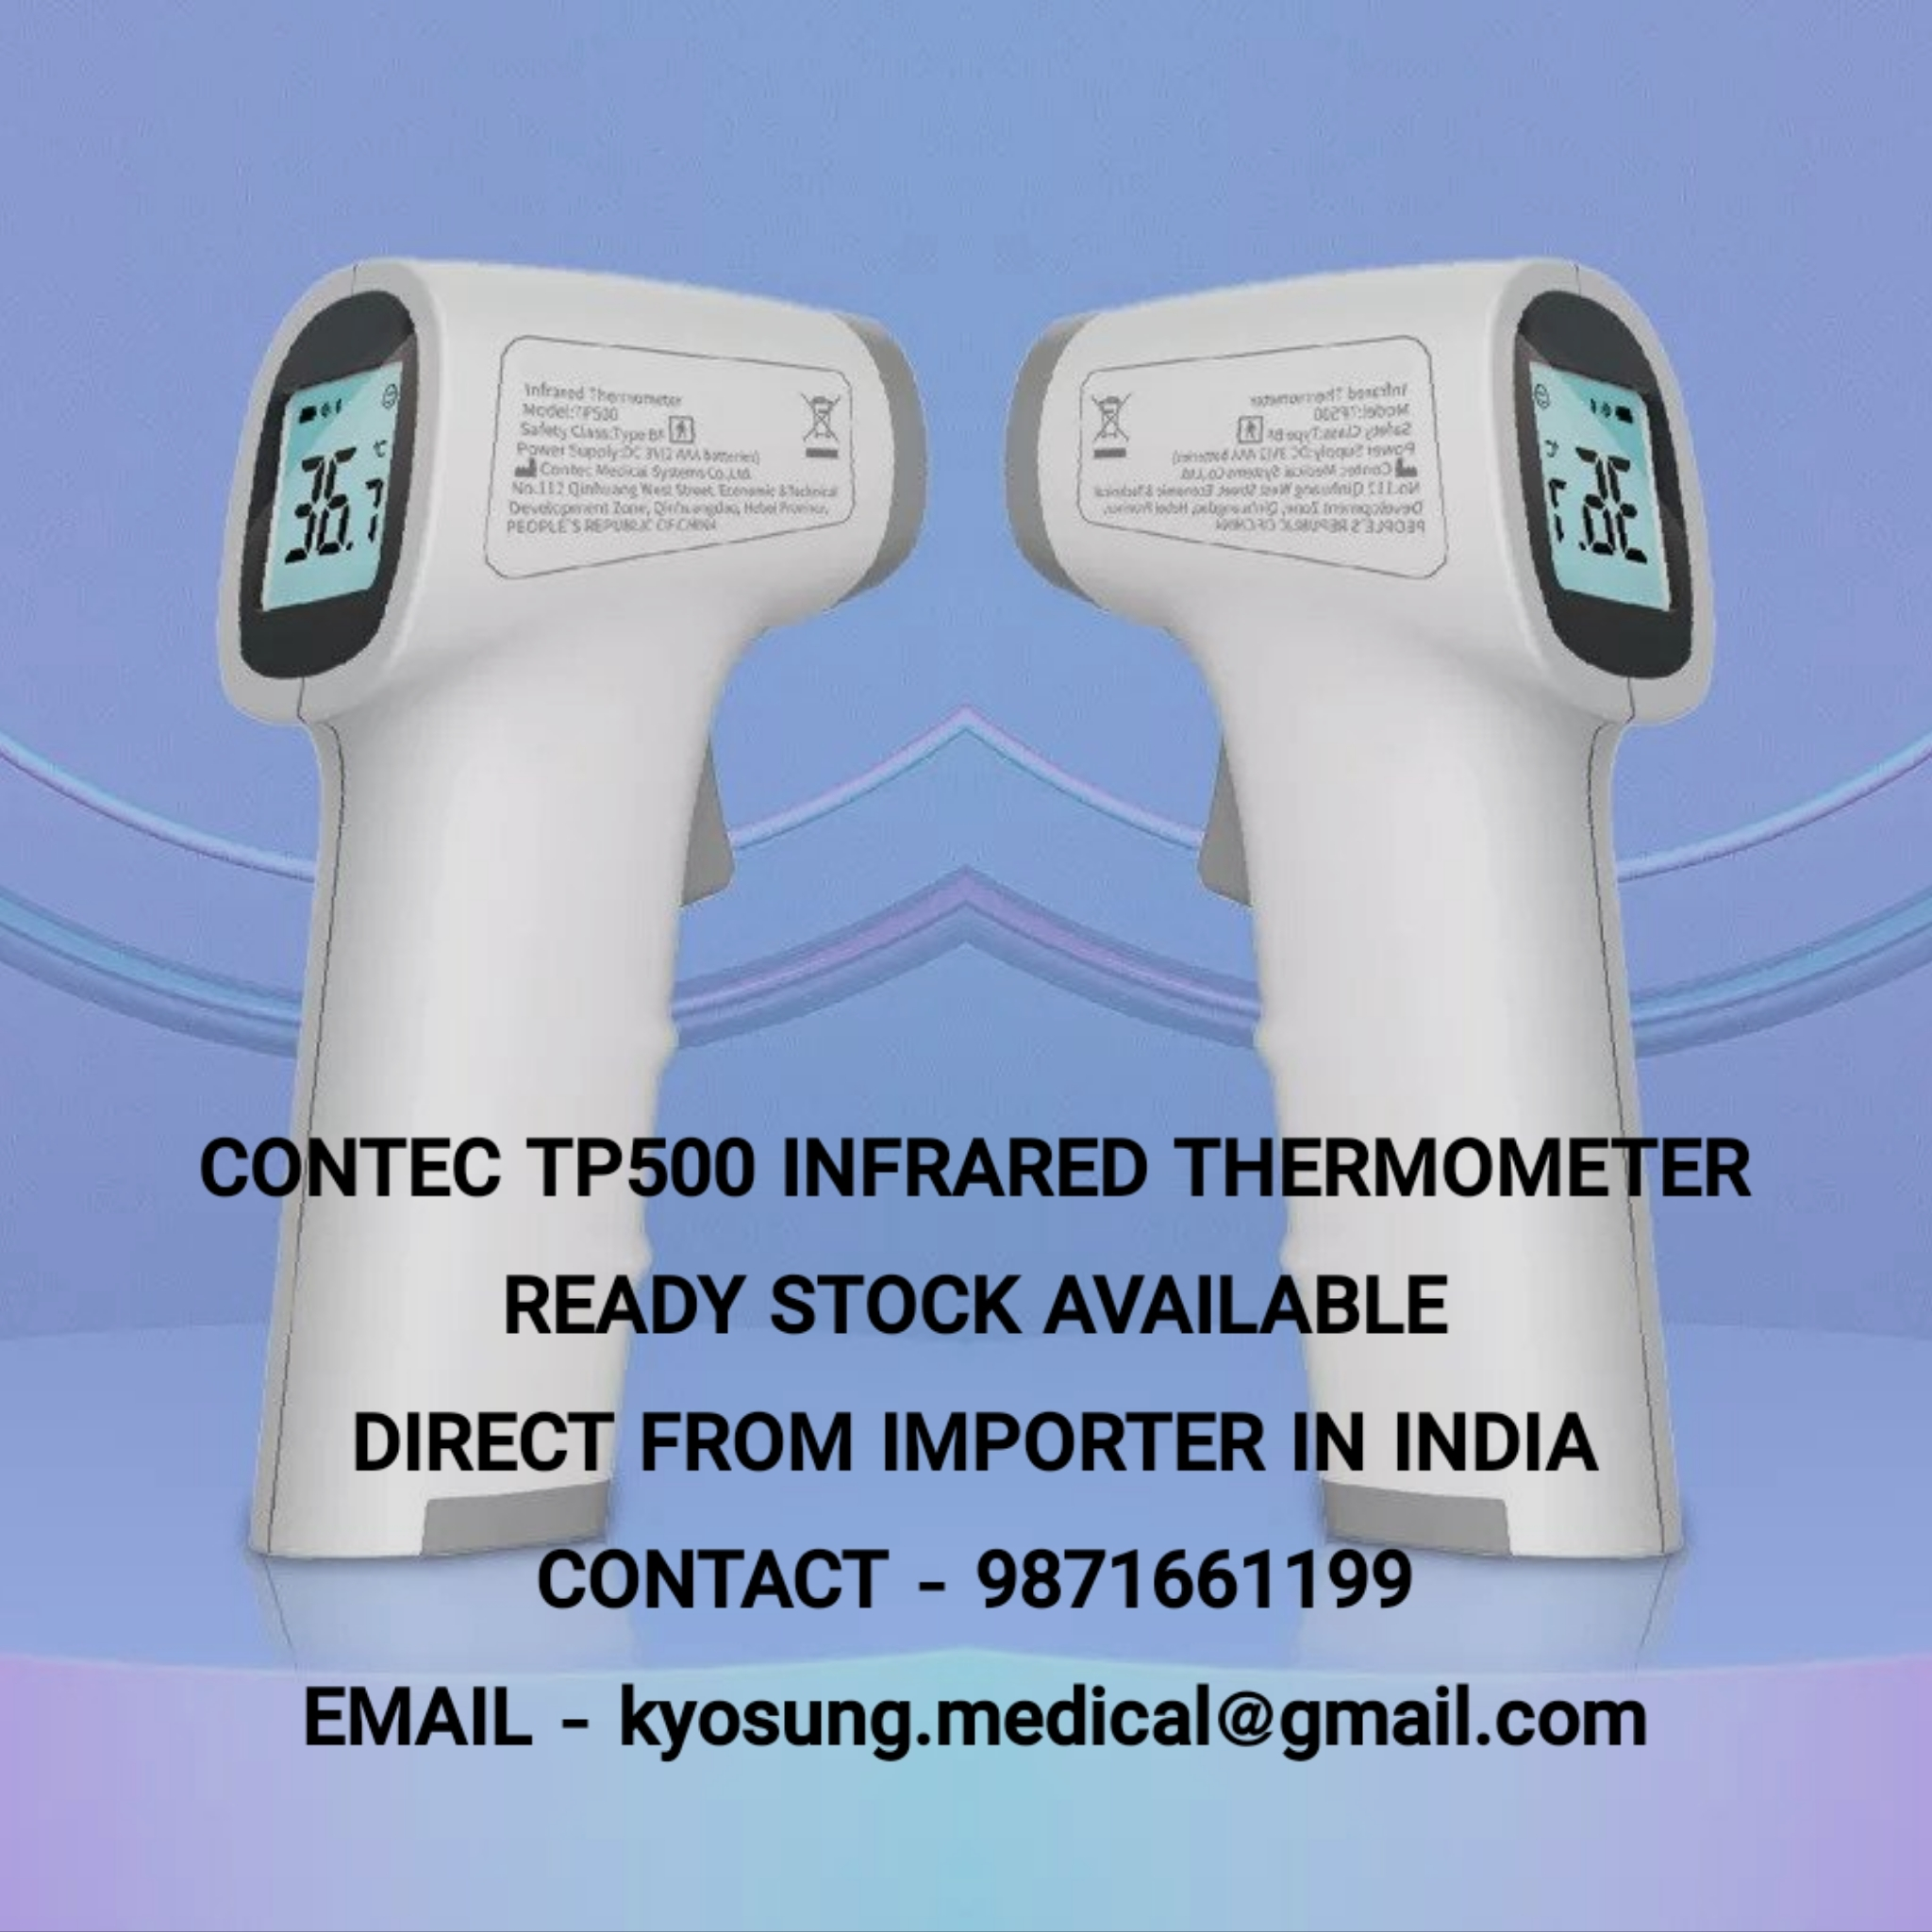 CONTEC TP 500 INFRARED THERMOMETER CALL @ 9871661199